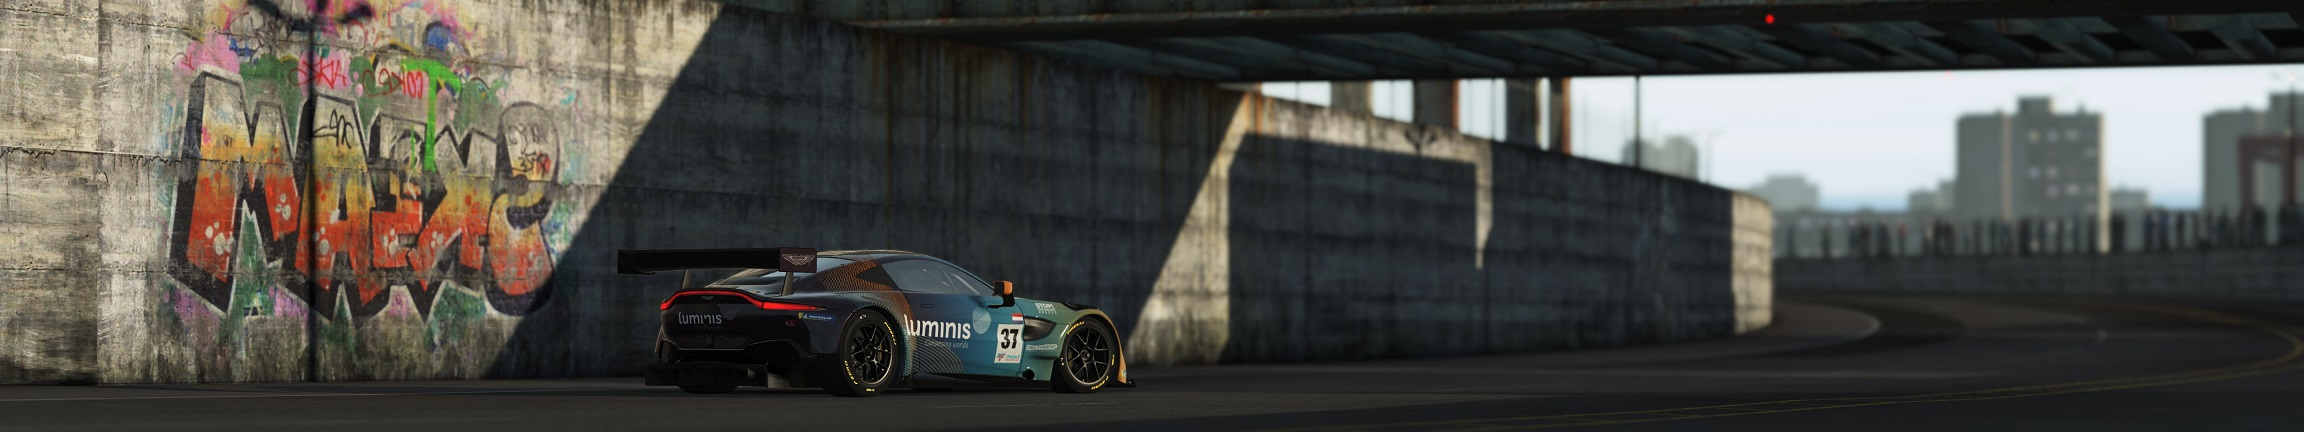 1 rF2 ASTON MARTIN at LESTER GP graf copy.jpg